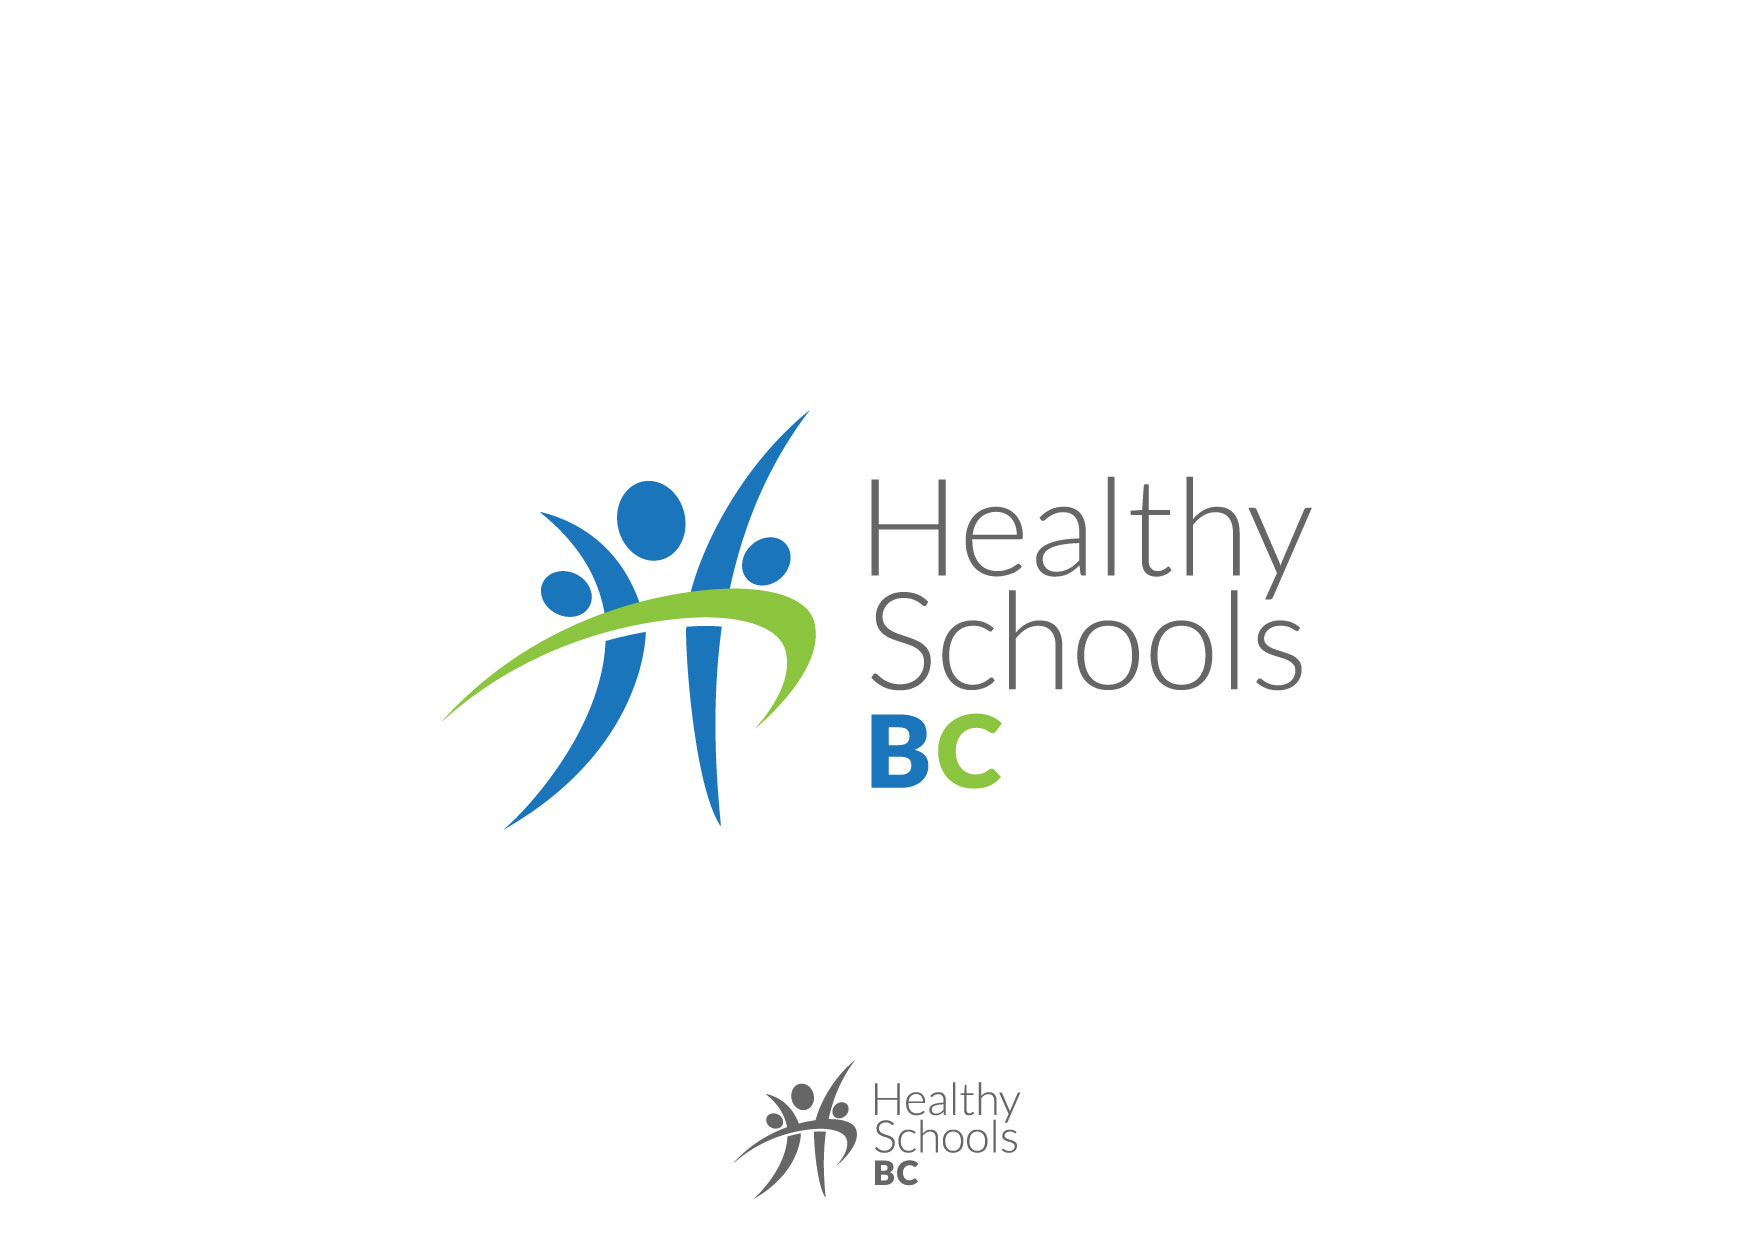 Logo Design by Nurgalih Destianto - Entry No. 389 in the Logo Design Contest SImple, Creative and Clean Logo Design for Healthy Schools British Columbia, Canada.